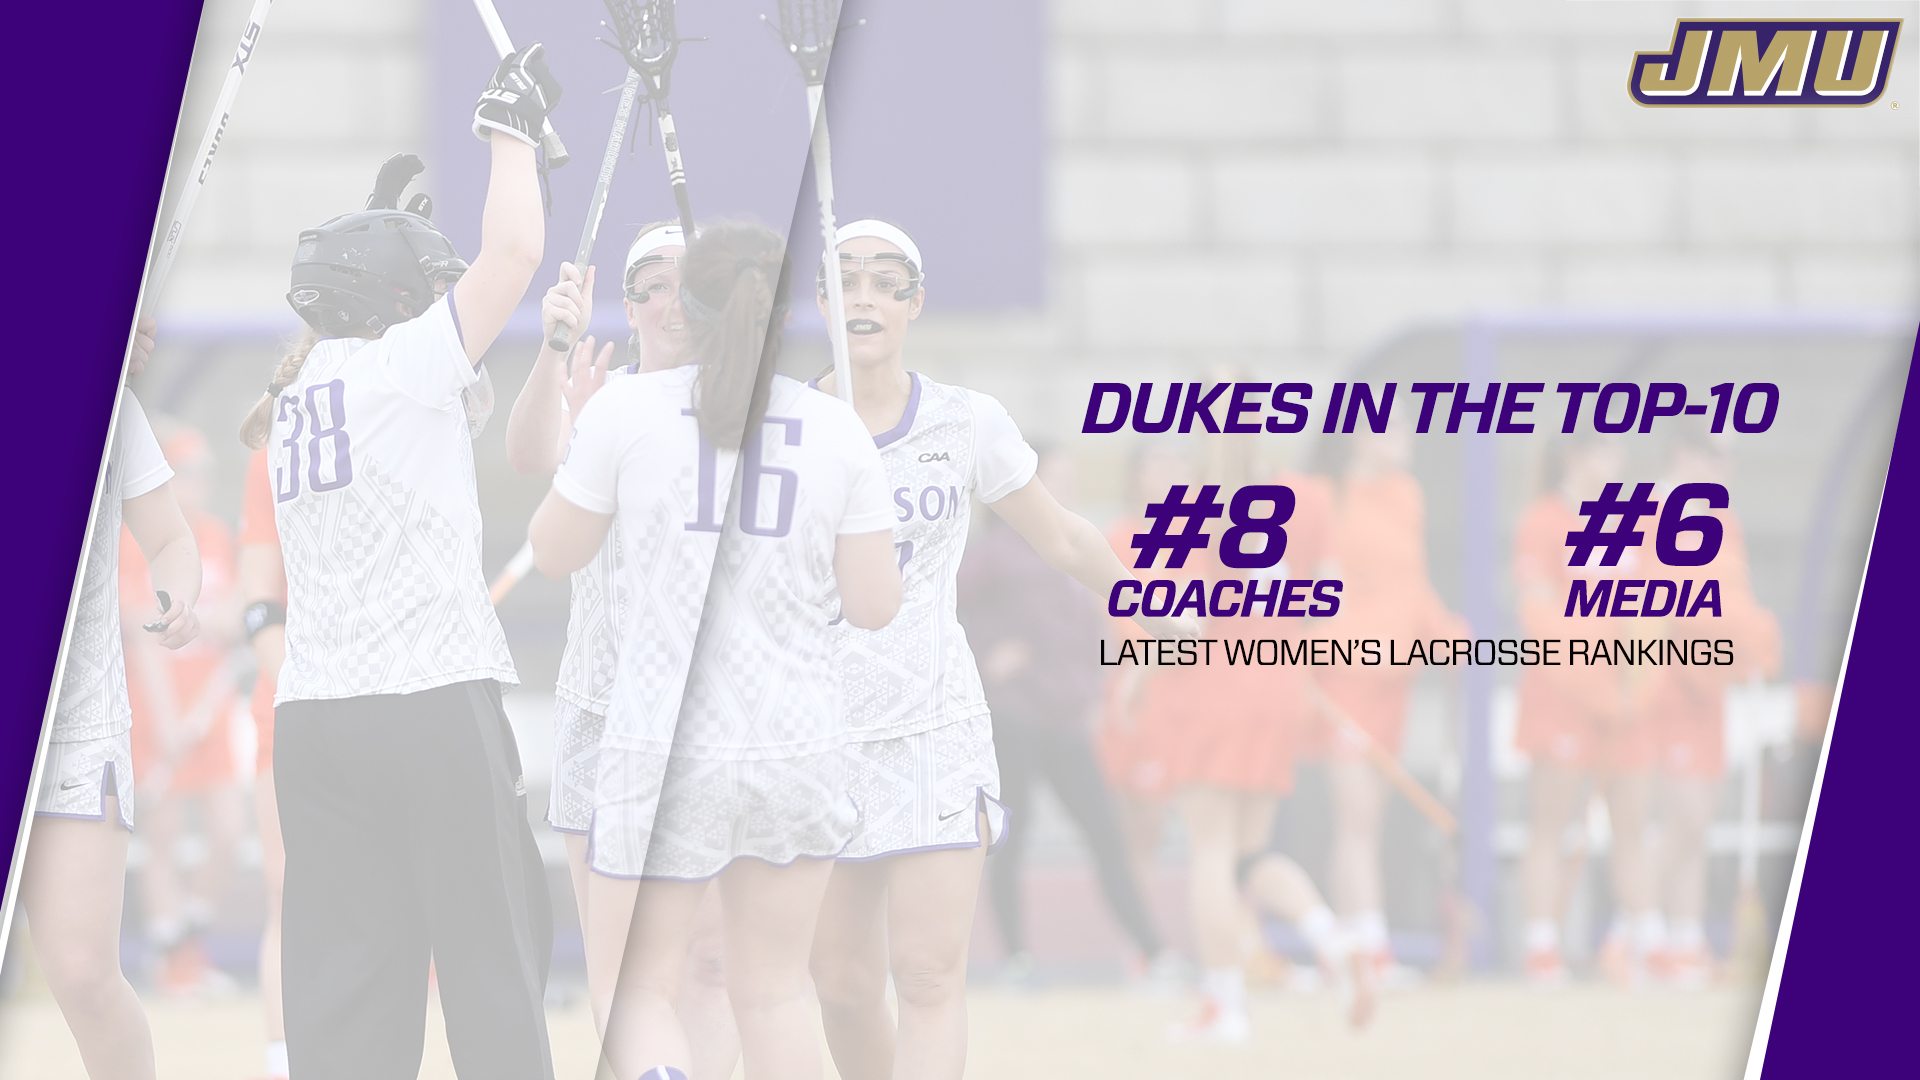 Women's Lacrosse: Dukes Move Up Into Top 10 in Both Major Lacrosse Polls)